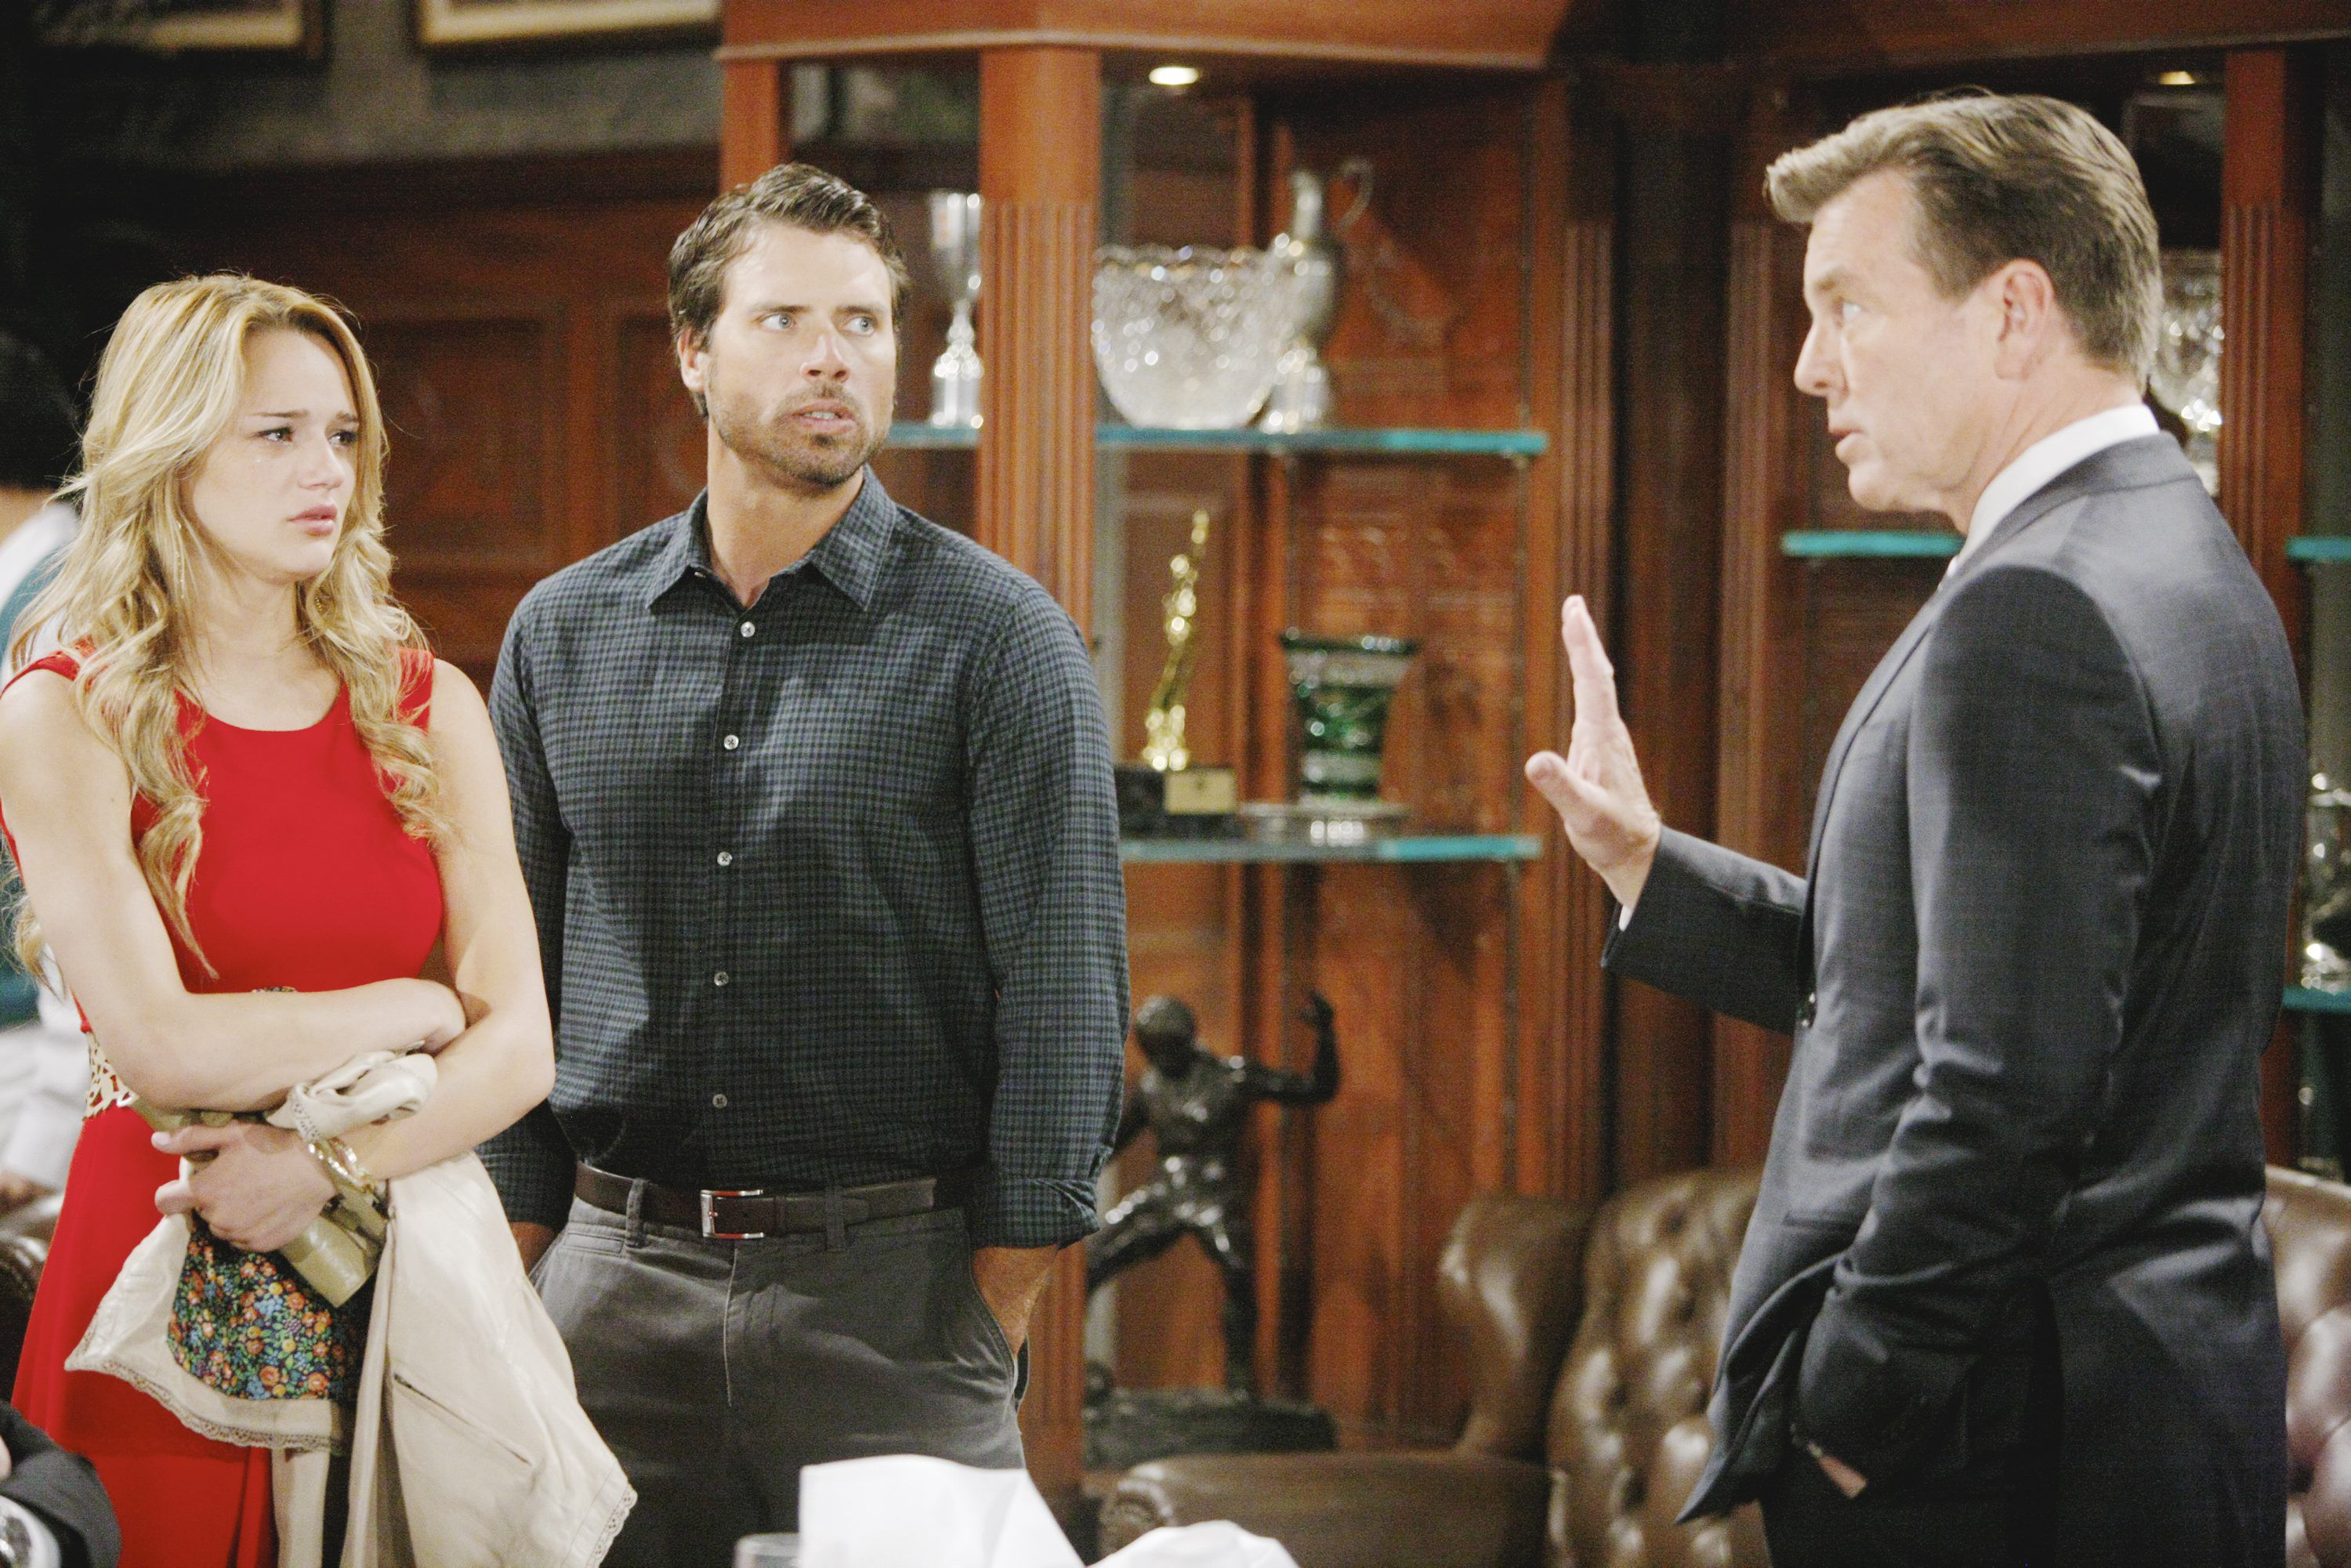 Summer and Nicholas Newman with Jack Abbott